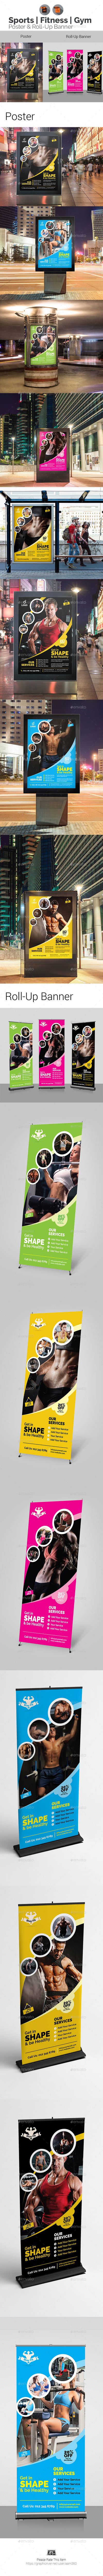 Sports / Fitness / Gym Signage Bundle - Signage Print Templates